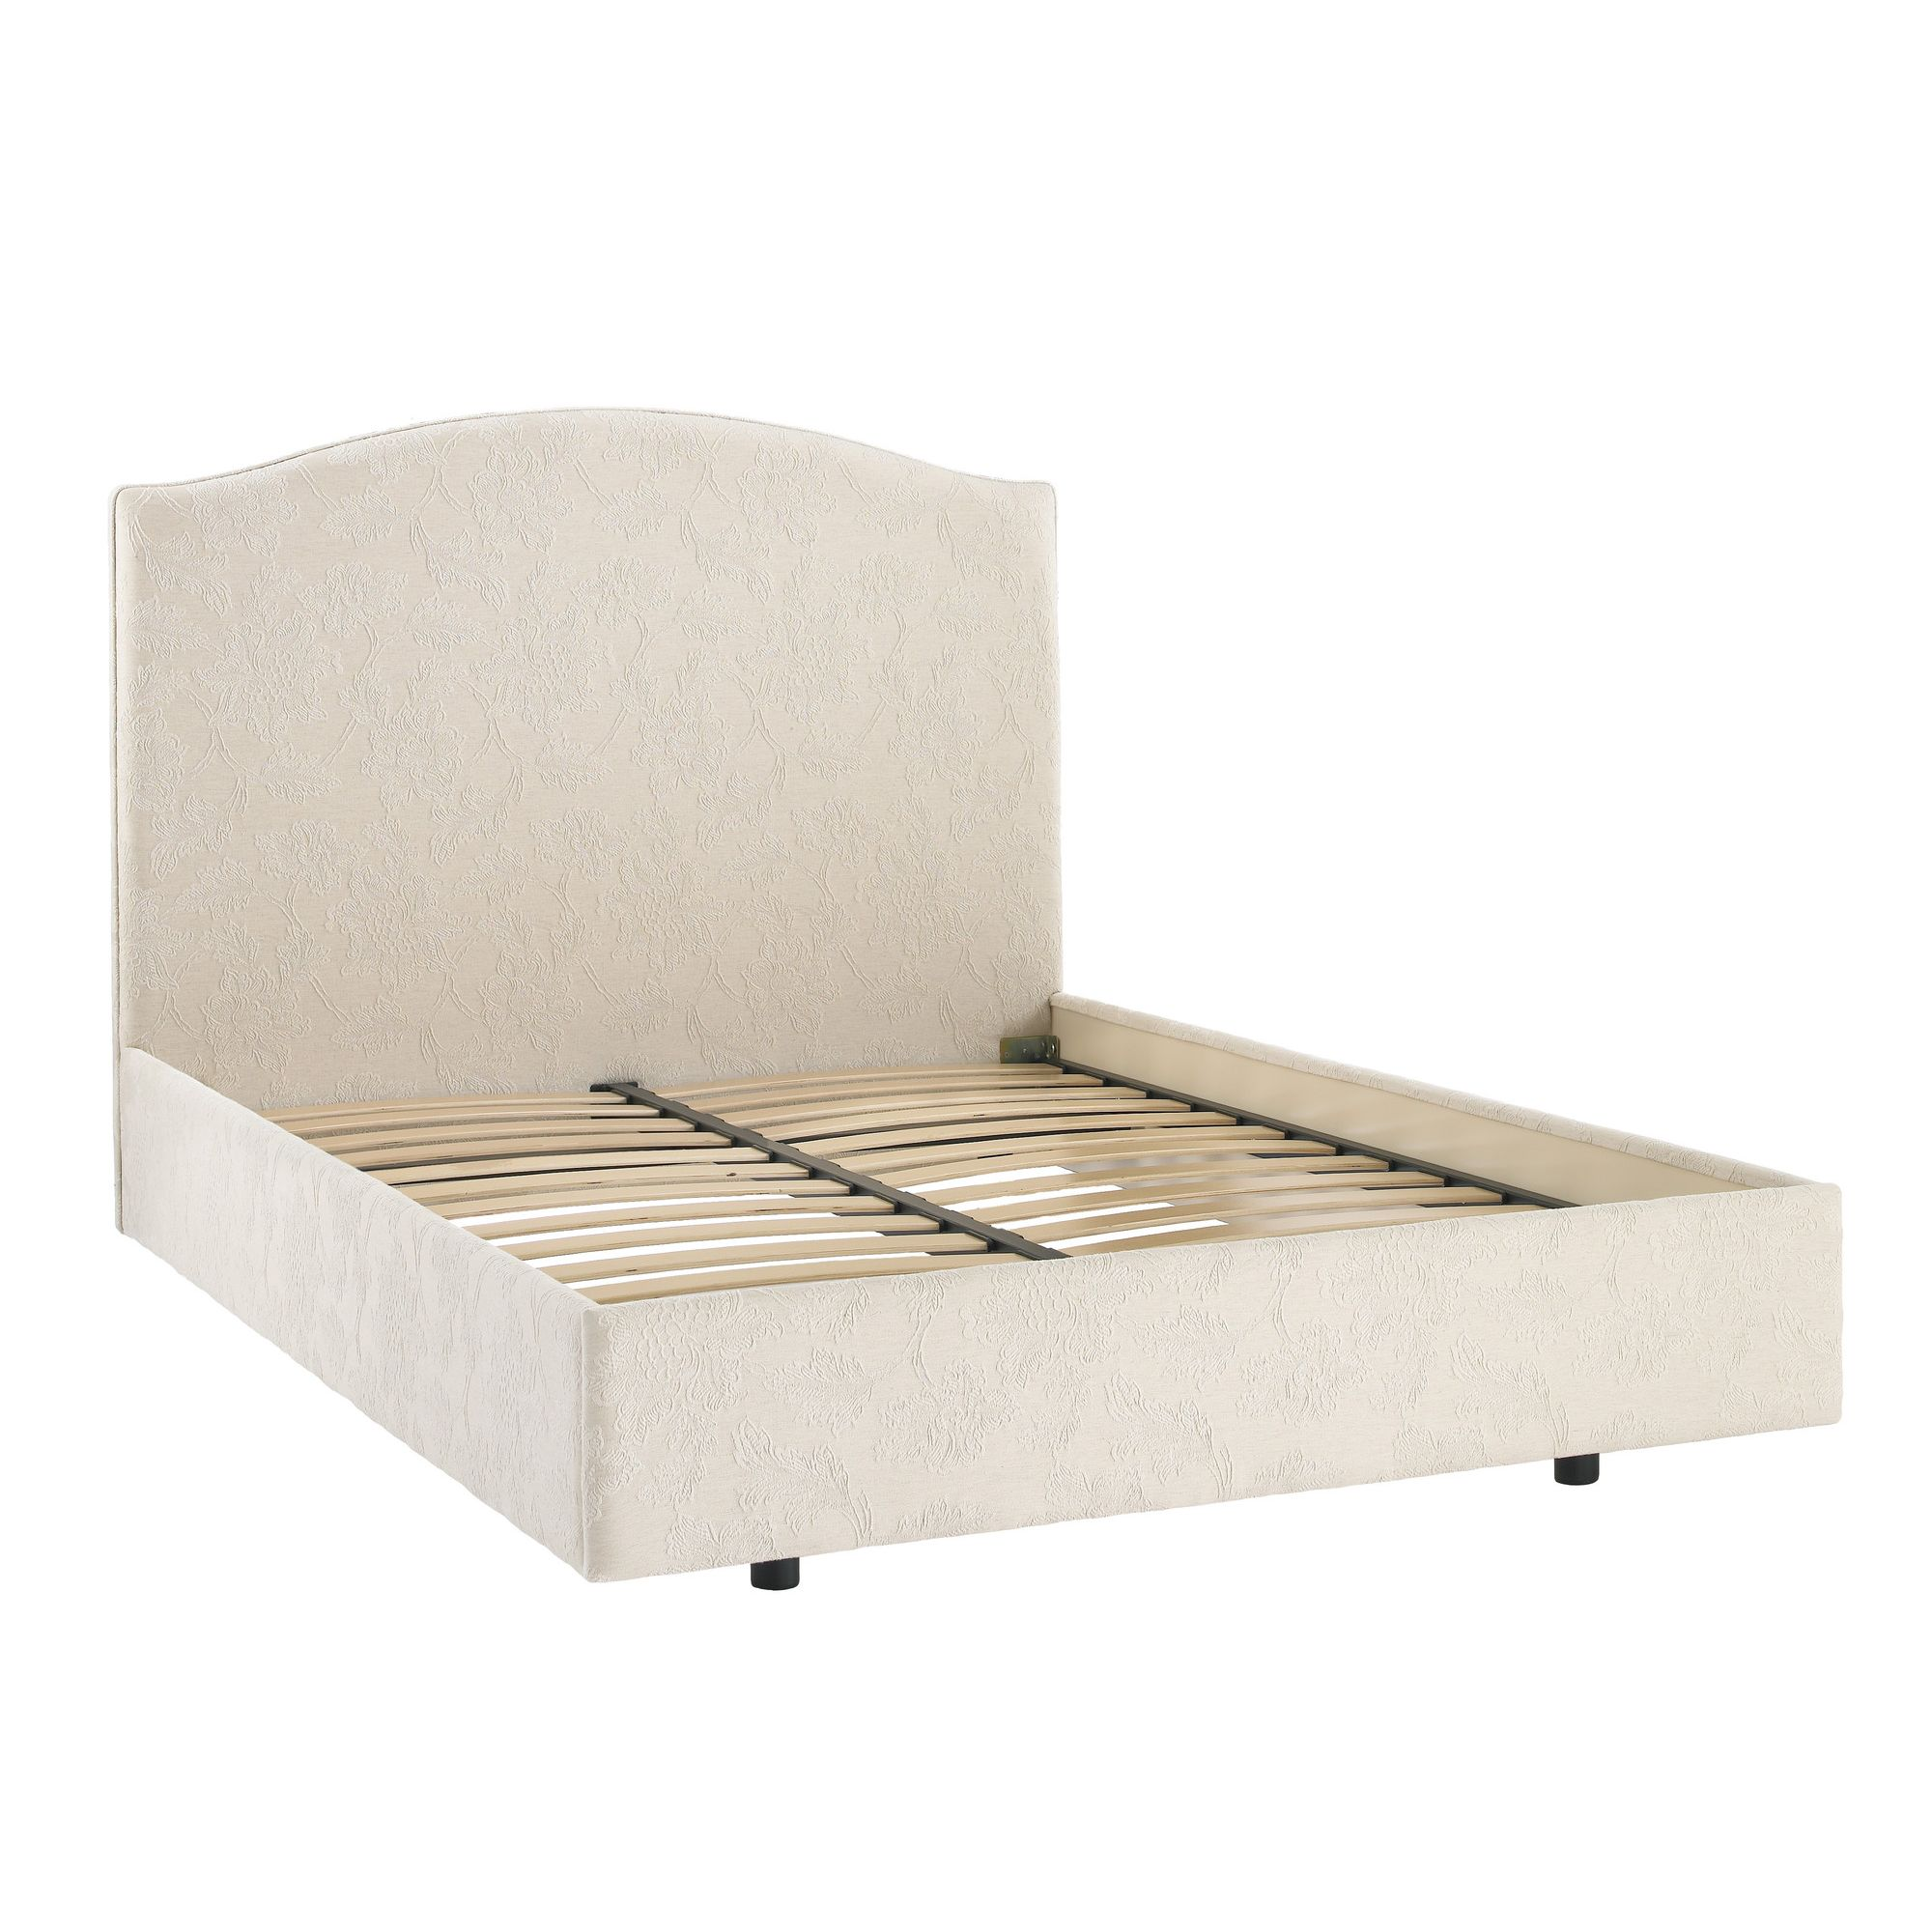 Swanglen Nice Ottoman Bedstead - Double / Chelsea Chestnut at Tesco Direct